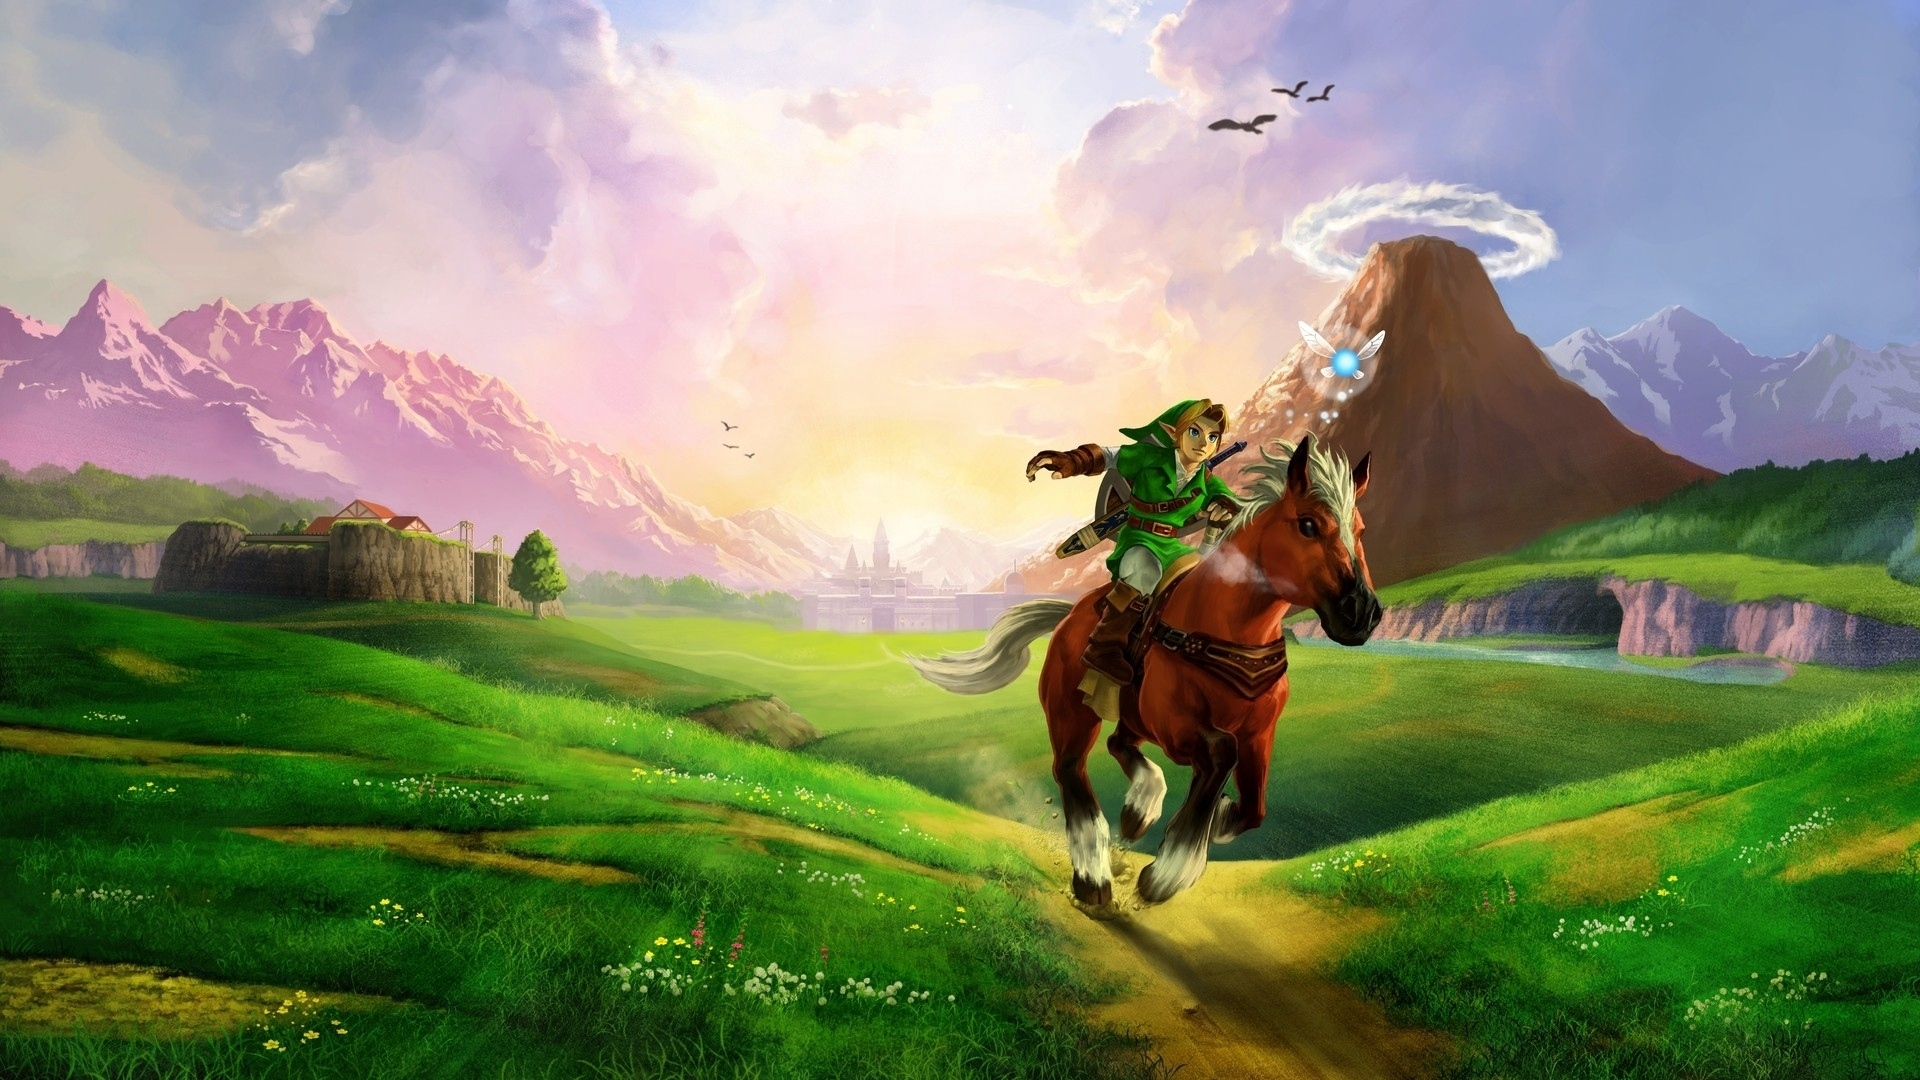 download wallpaper 1920x1080 the legend of zelda, horse, plain